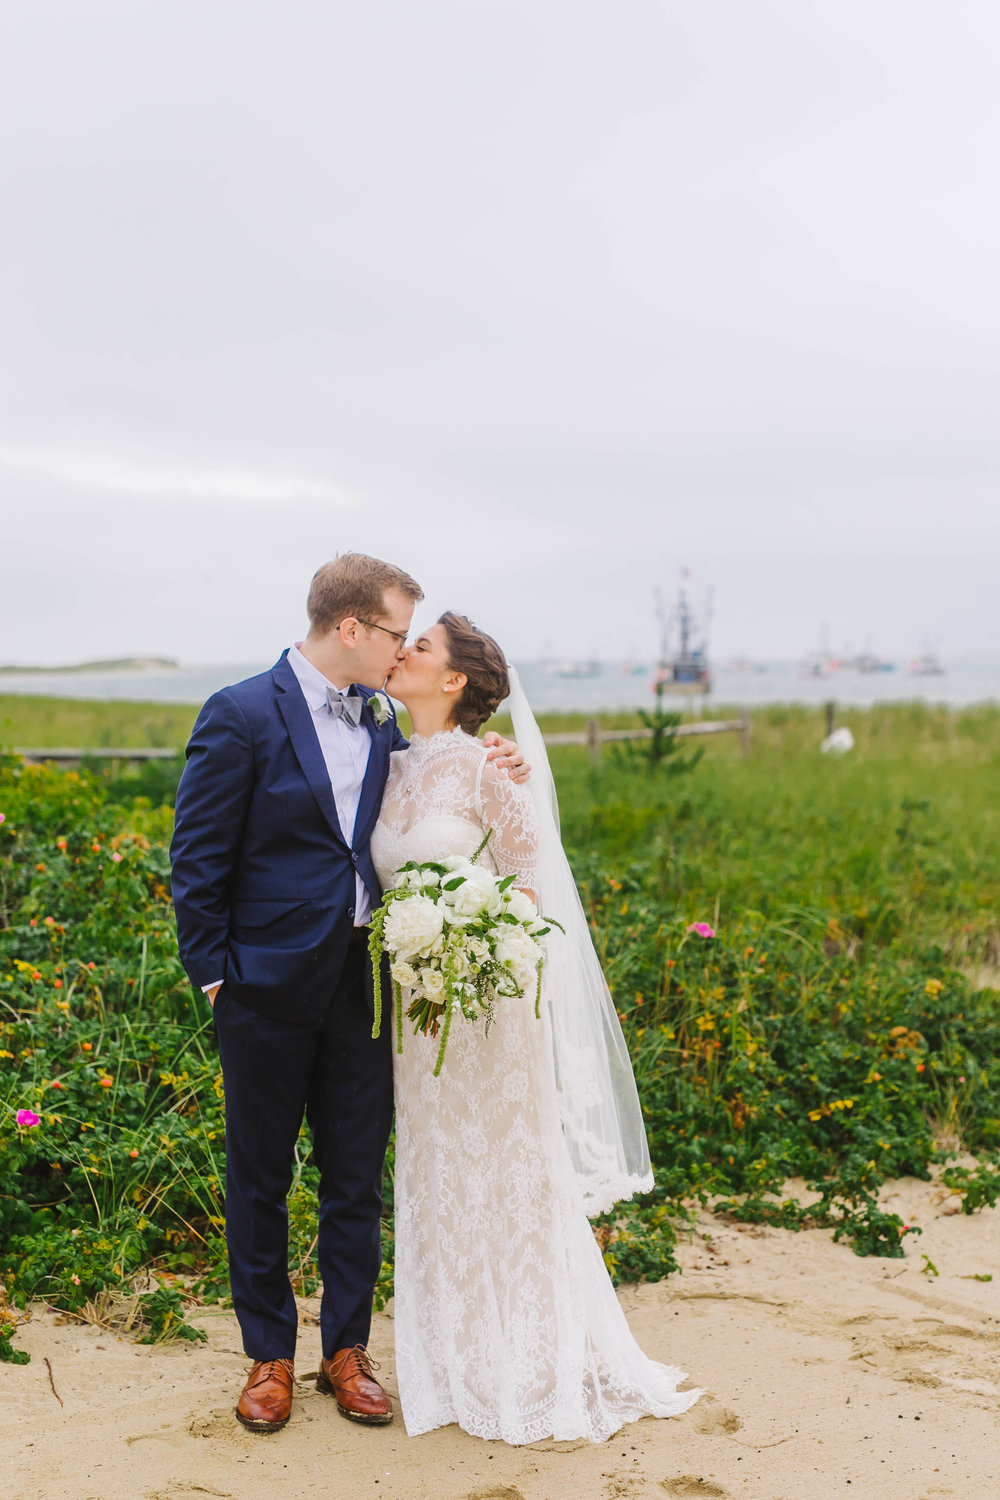 Chatham Bars Inn Cape Cod MA Rain Rainy Wedding with Dog - Emily Tebbetts Photography-9.jpg